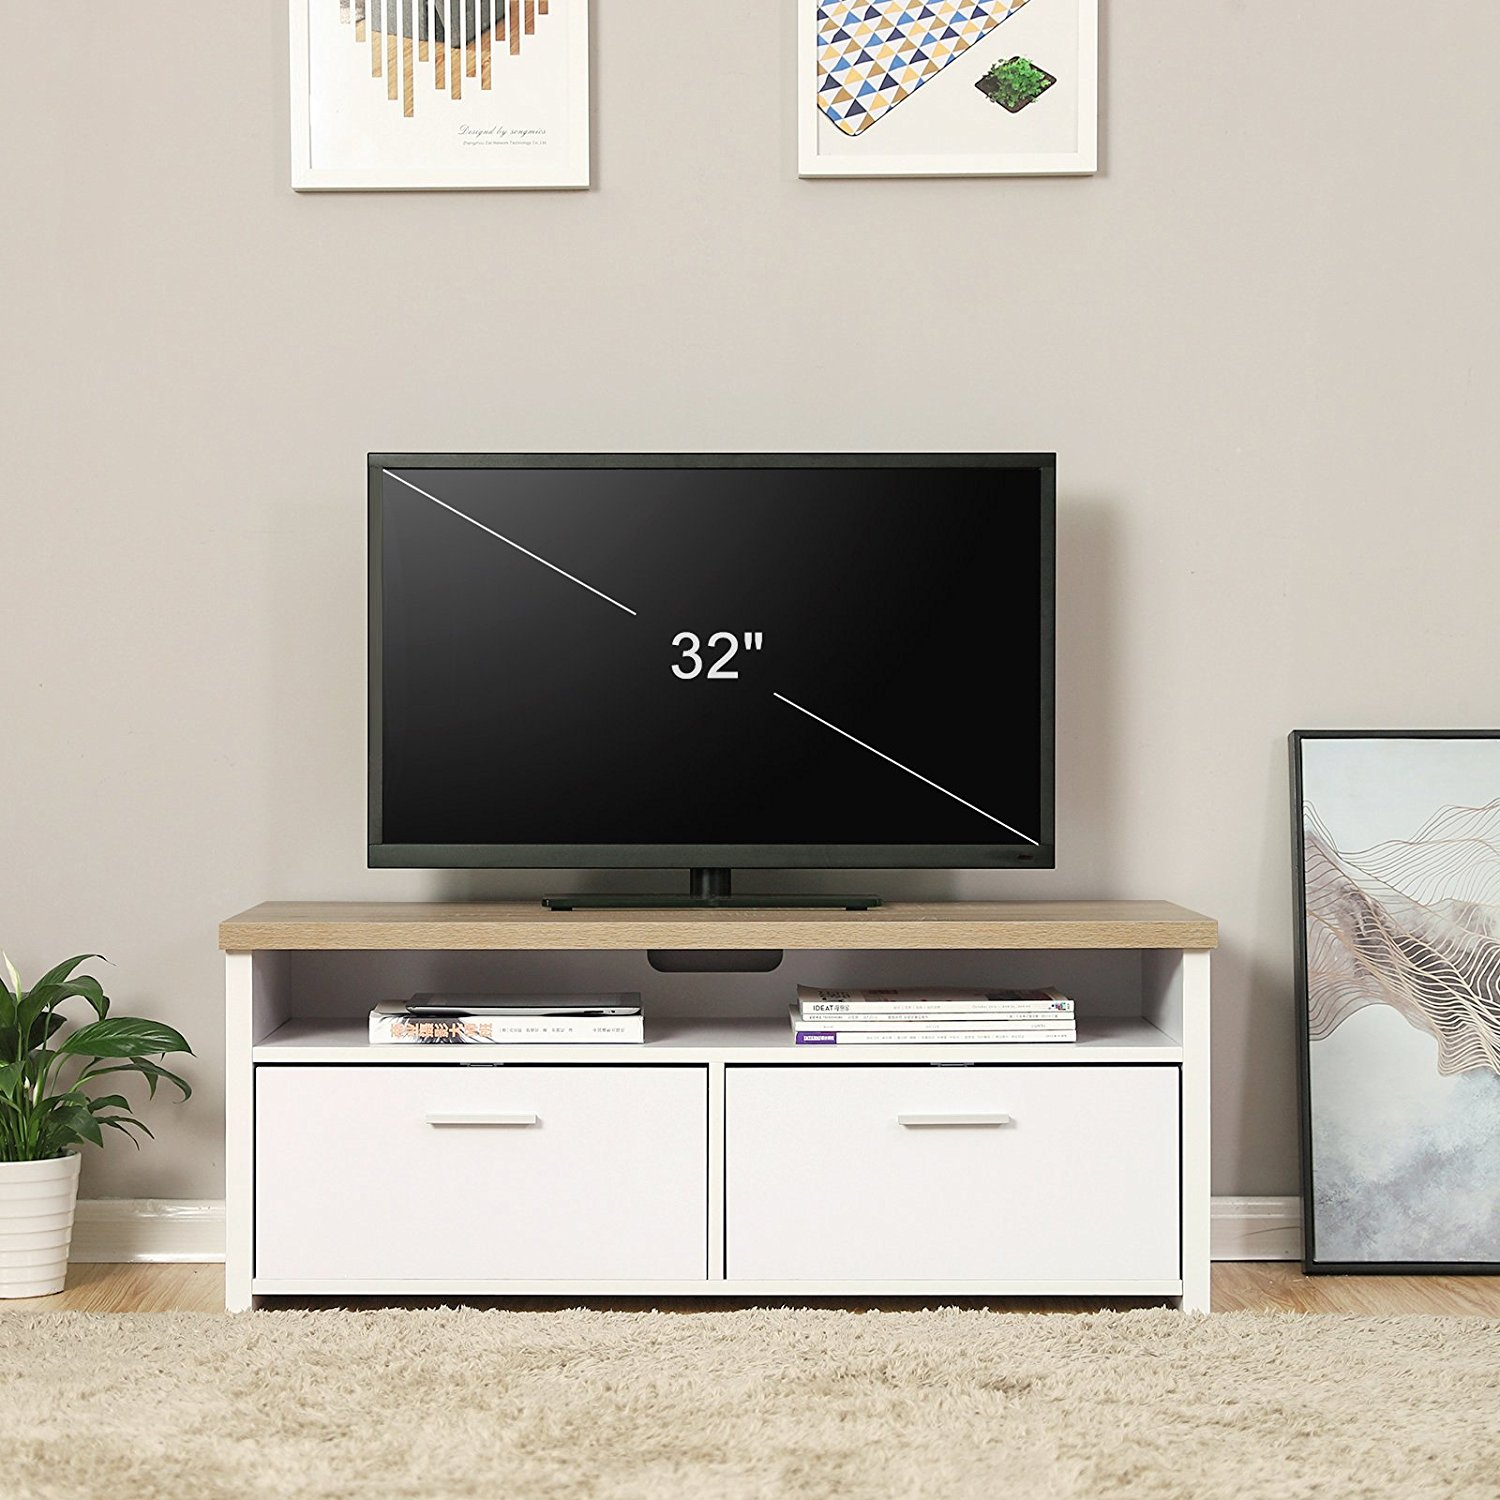 Muebles Para Tv Led 55 Ofertas 2019